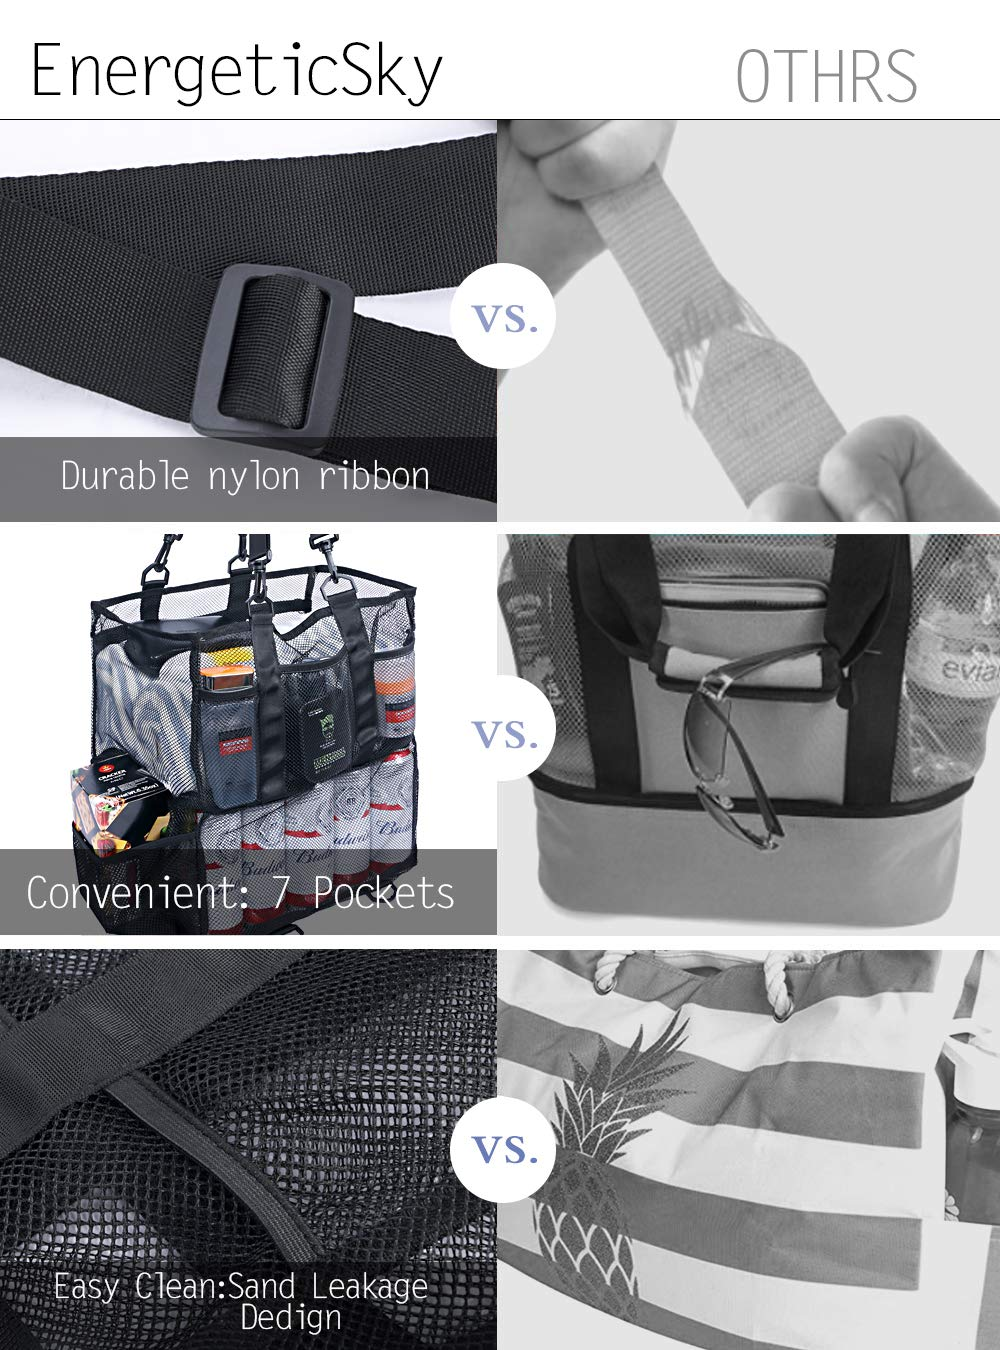 Large//Small Mesh Beach Bag,Large Beach Tote Bag,Pool Bag with 7 Large Pockets and Middle Compartment Innovation Design-Grocery /& Picnic Tote Travel Bags for Family.